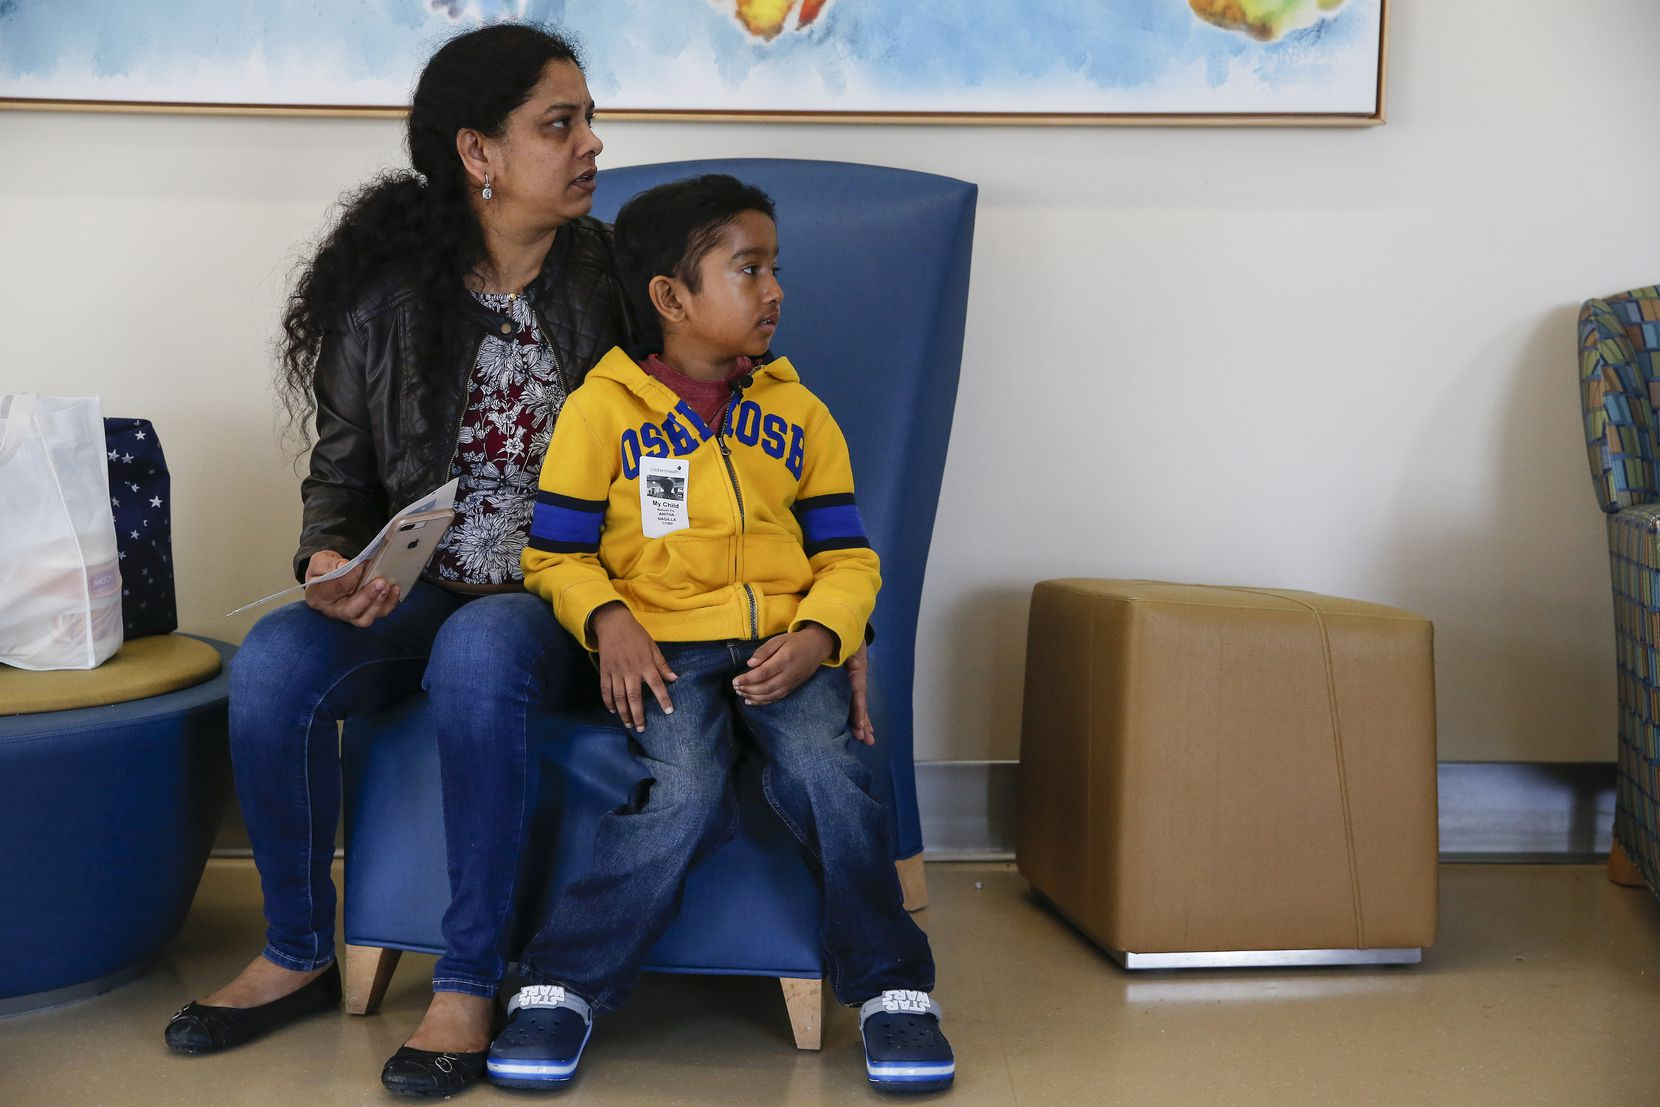 Akshaj Nagilla, 8, of Frisco, sits in a waiting room with his mother Anitha Nagilla, as they walk down the hallway to an appointment at Children's Medical Center Dallas on Friday, Feb. 7, 2020 in Dallas. In 2017, when Akshaj was six years old, he was diagnosed with leukemia and in desperate need of a bone marrow transplant. In August of 2017, he received his first transplant through the Be The Match donor program, which his family believes saved his life. After a relapse of the cancer in 2018 he needed a new transplant, which he received two days after Christmas in 2018. Today, Akshaj is now 8 years old and is still in remission, often visiting Children's Medical Center for checkups and blood work. (Ryan Michalesko/The Dallas Morning News)